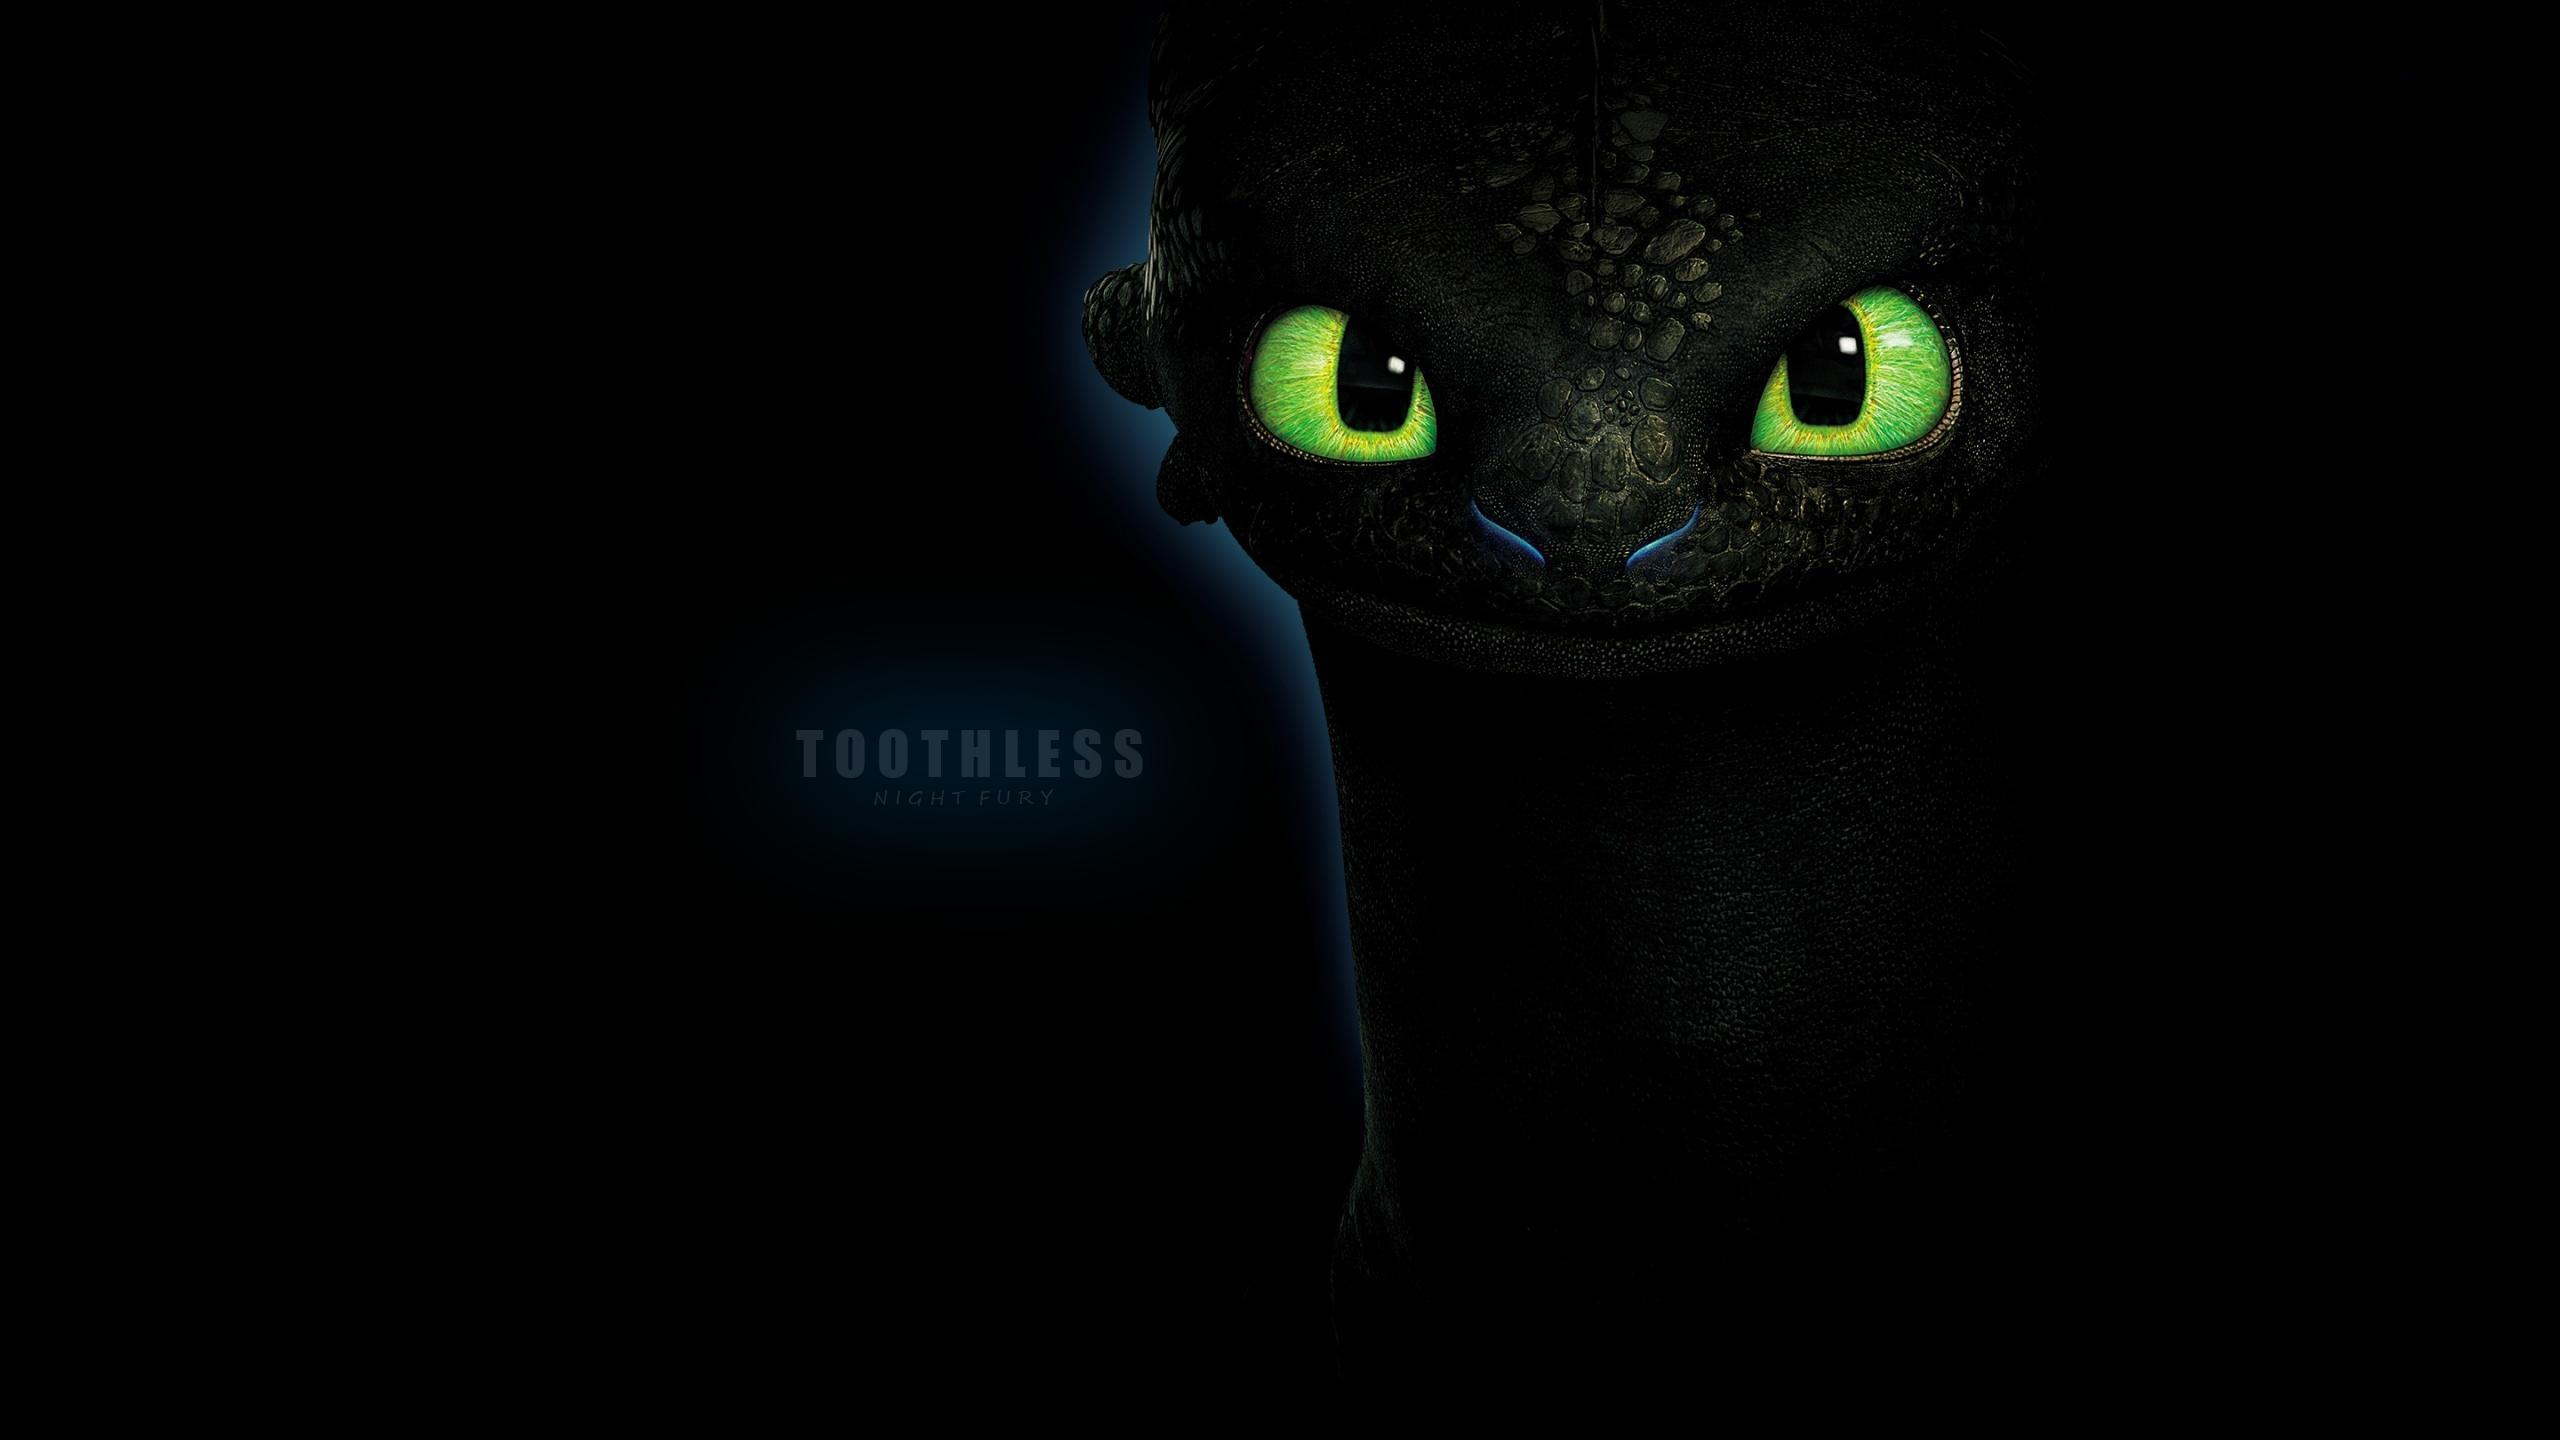 Toothless Wallpapers 2560x1440